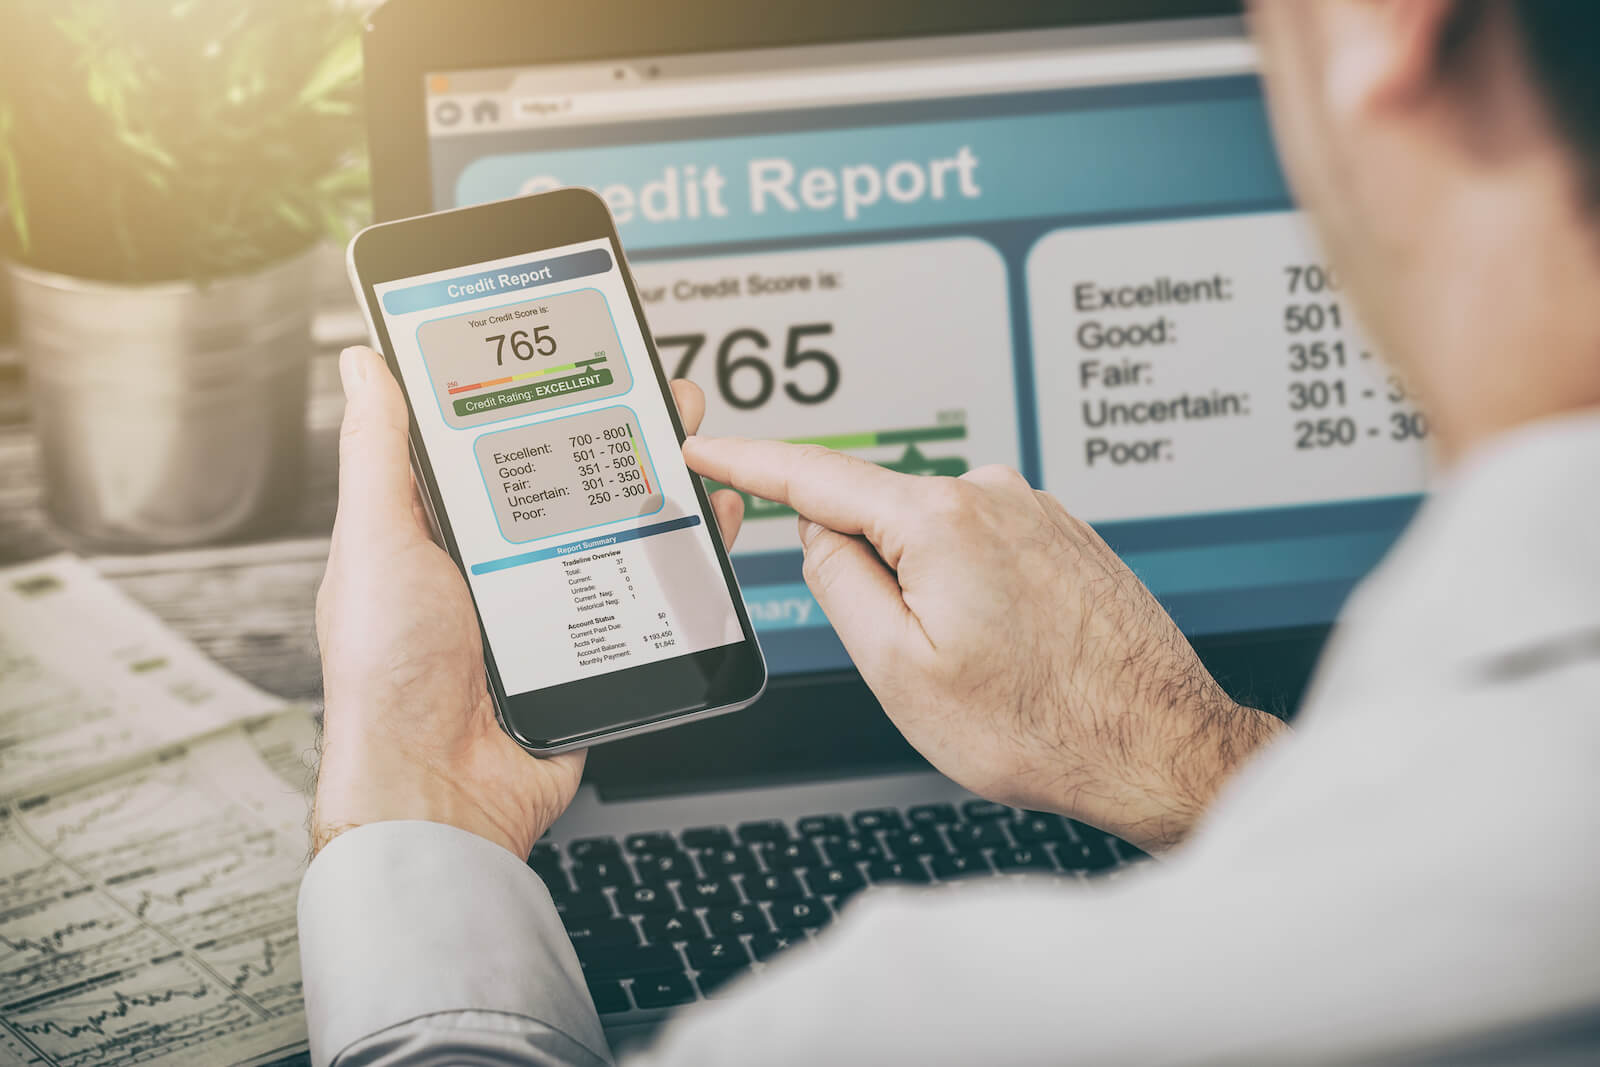 What credit score do you need to qualify for the best cards from each bank?